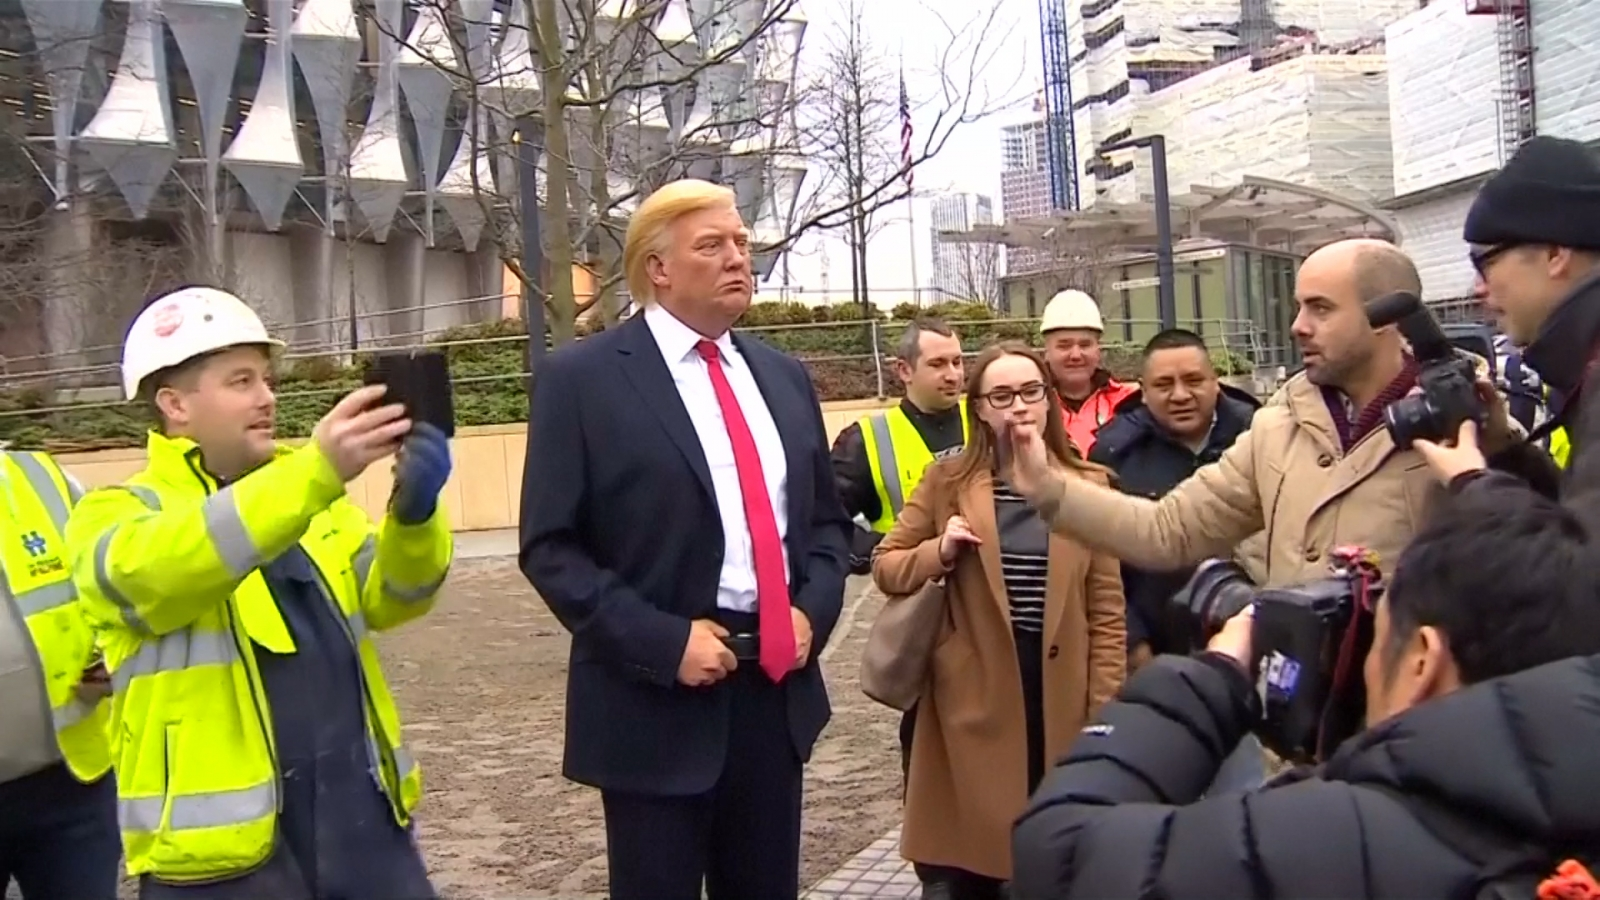 president-trump-wax-statue-erected-at-u-s-embassy-in-london